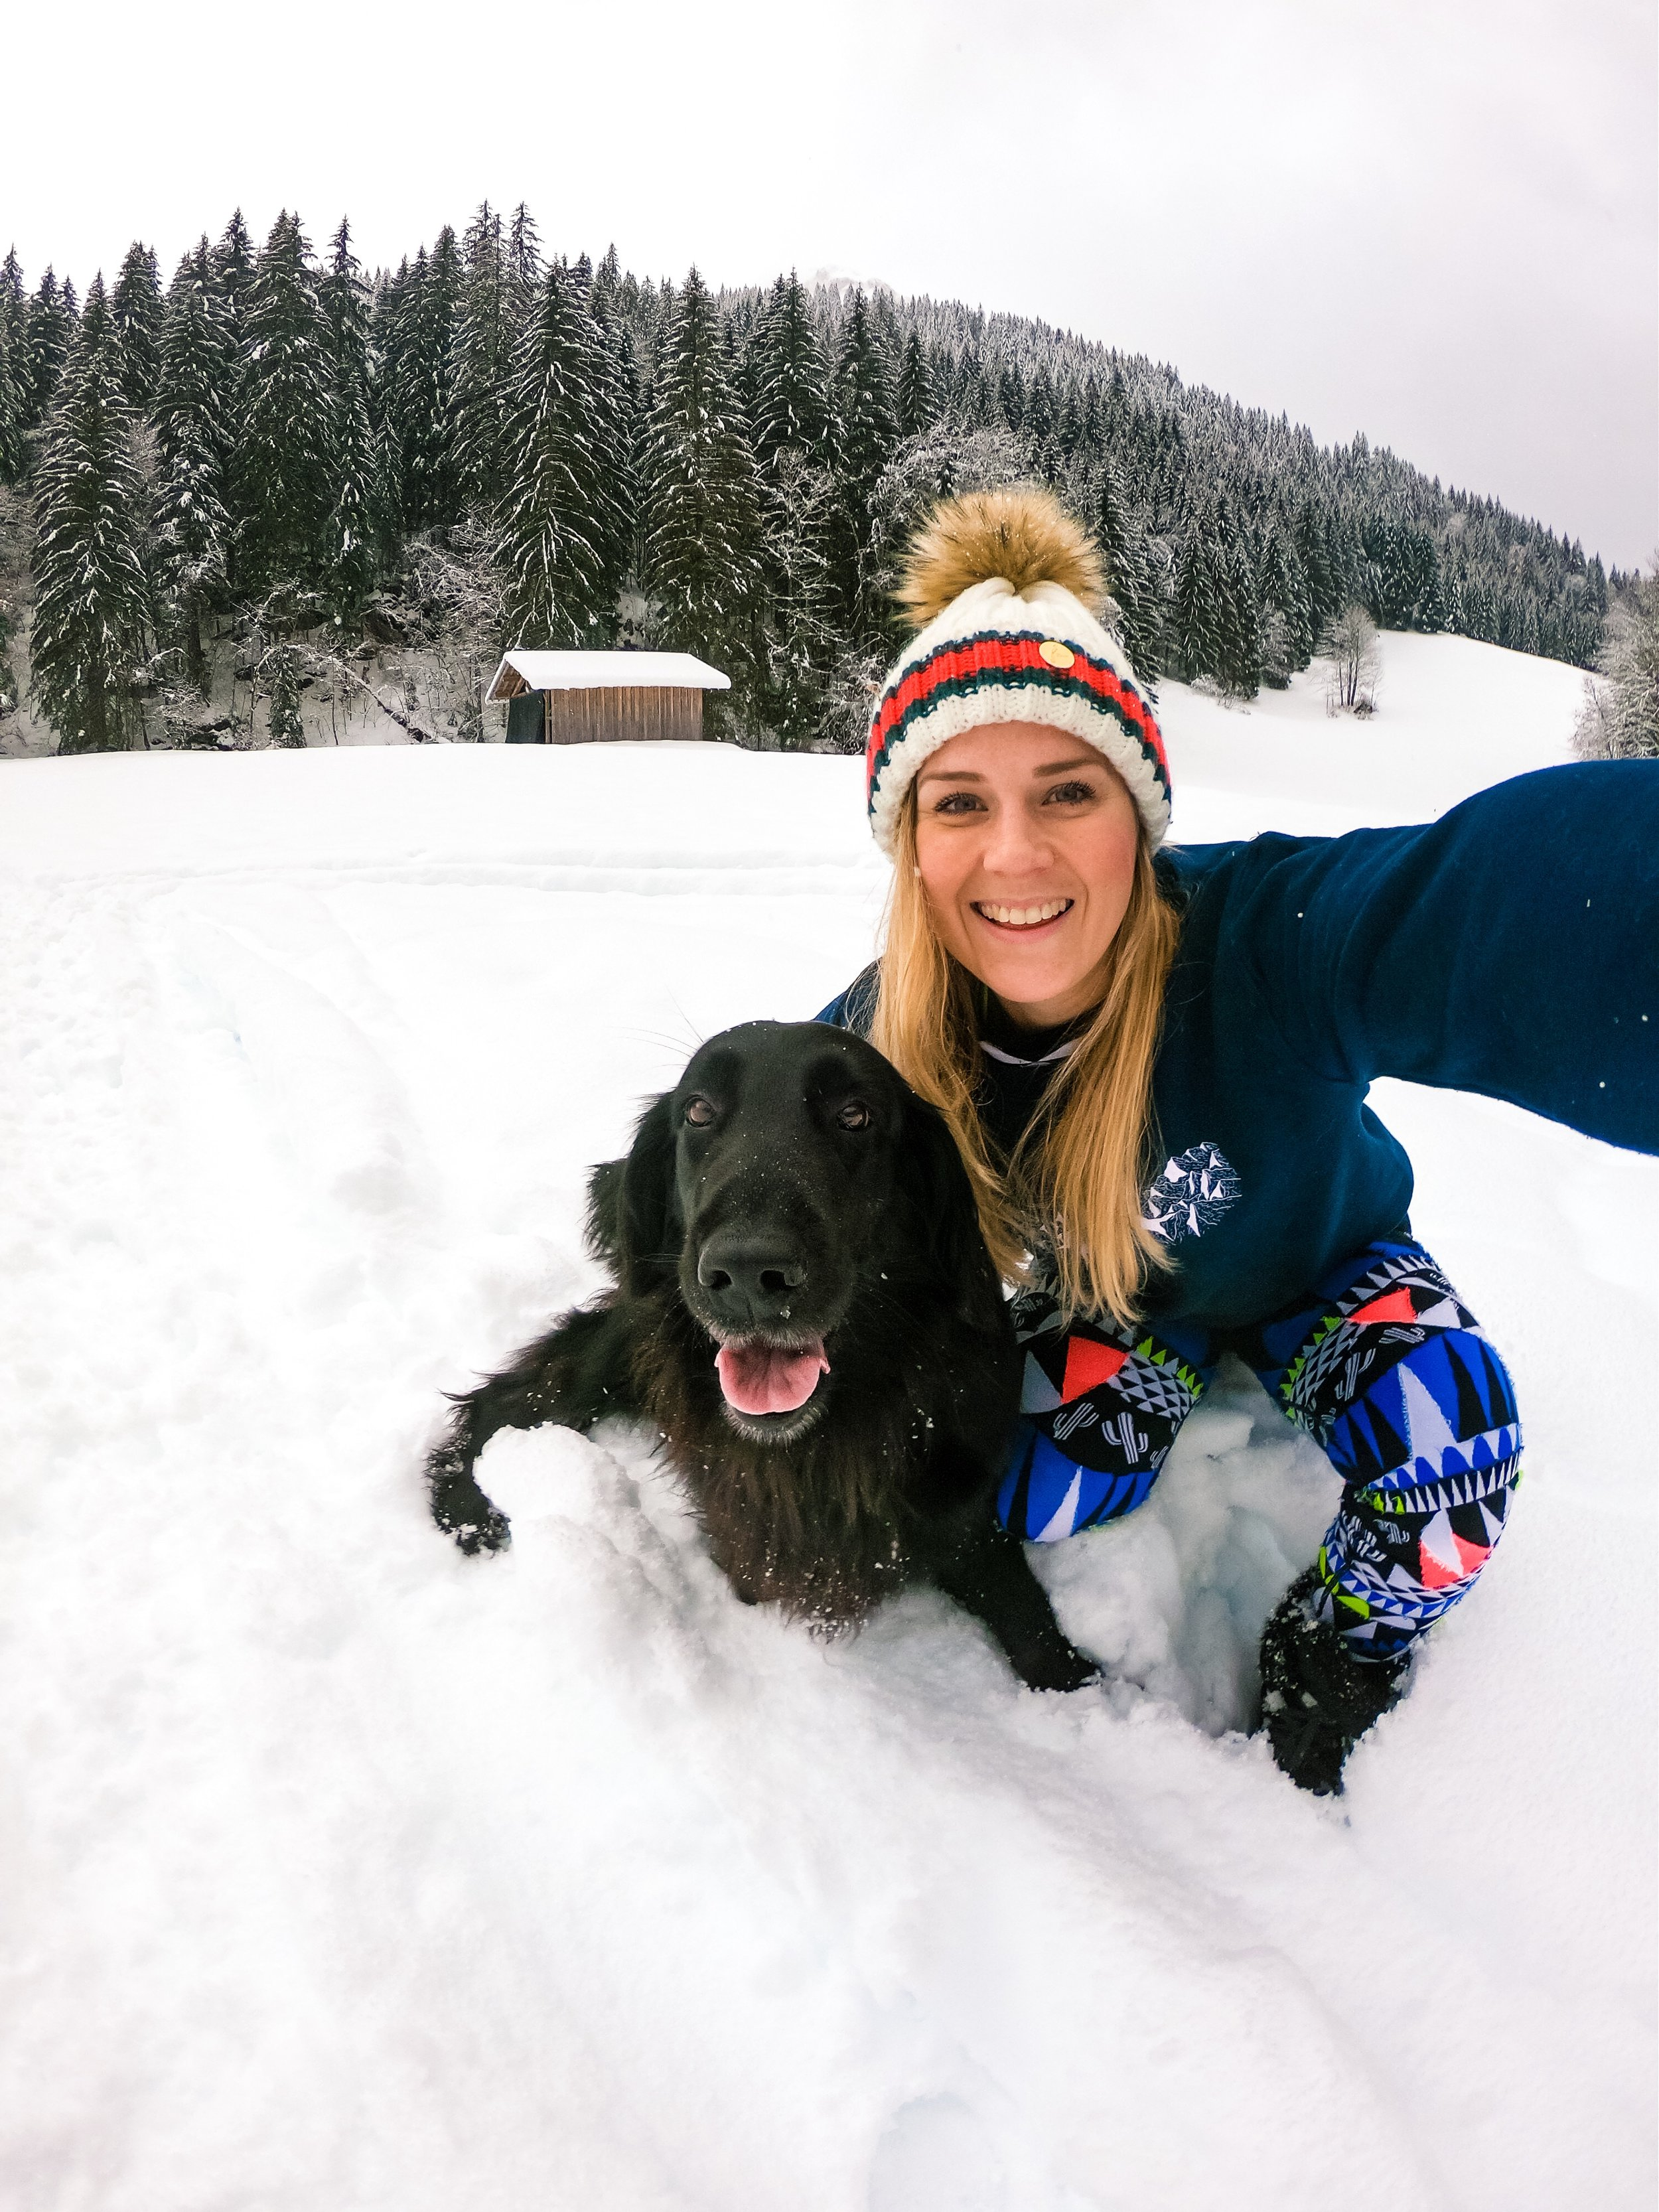 Chilly Powder Morzine, Skiing, adventure sports, Challenge Sophie, Sophie Radcliffe